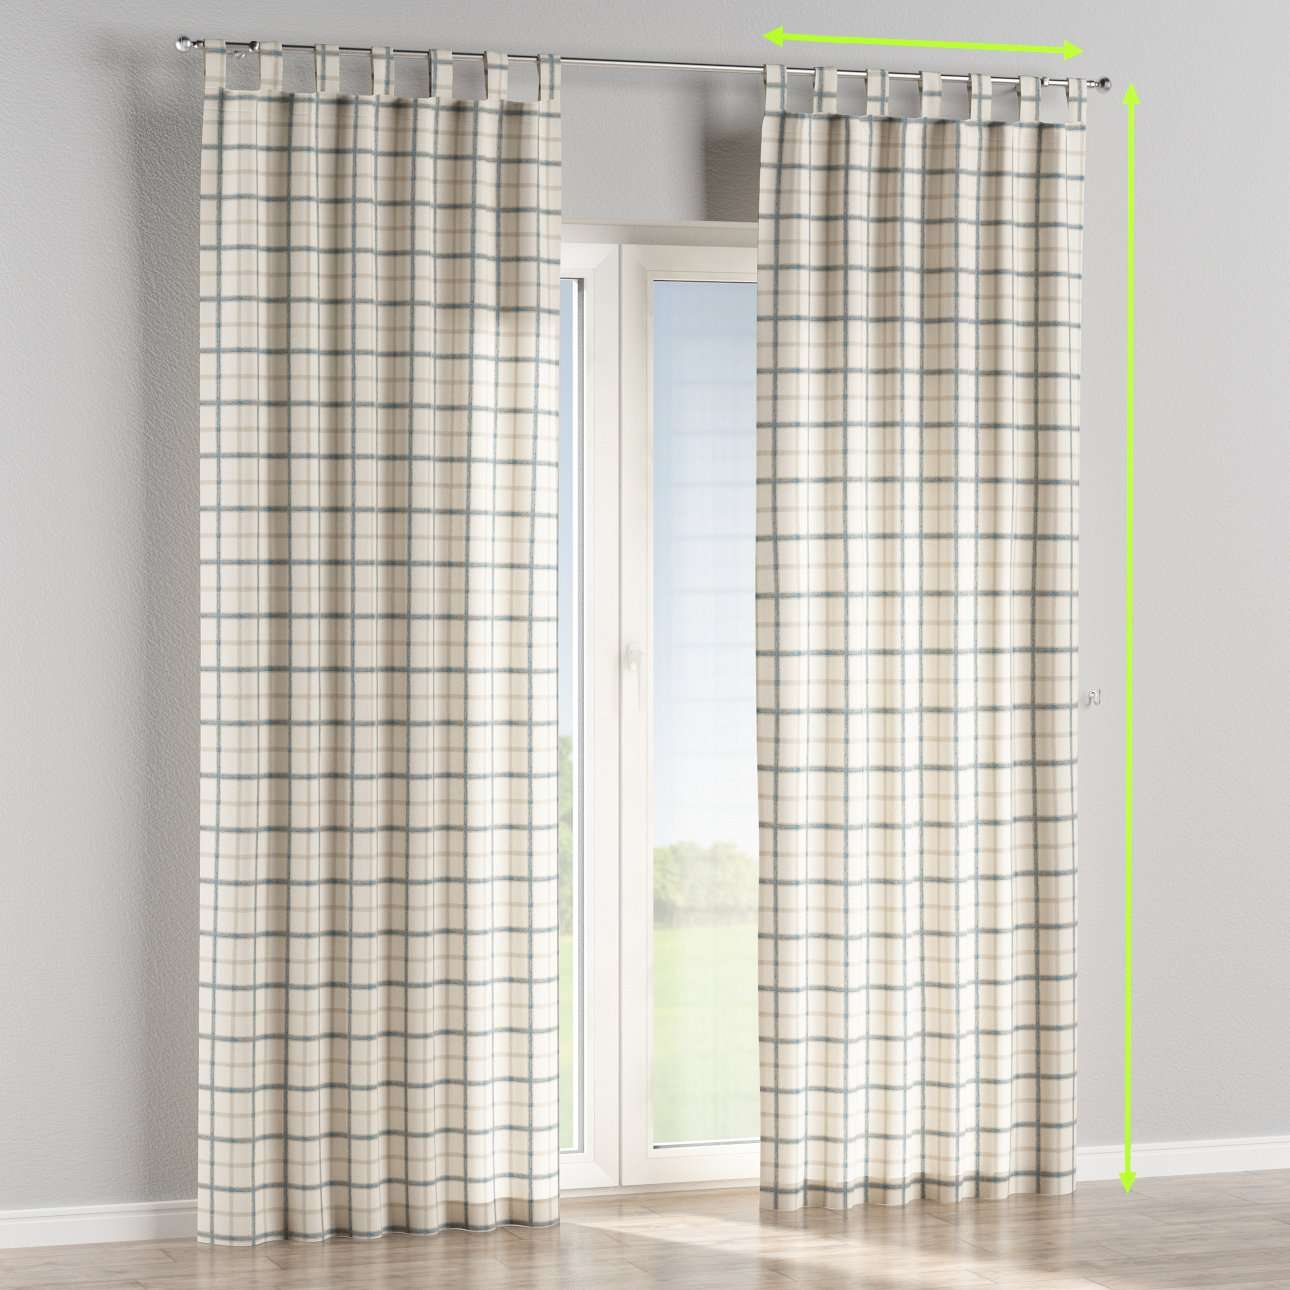 Tab top curtains in collection Avinon, fabric: 131-66